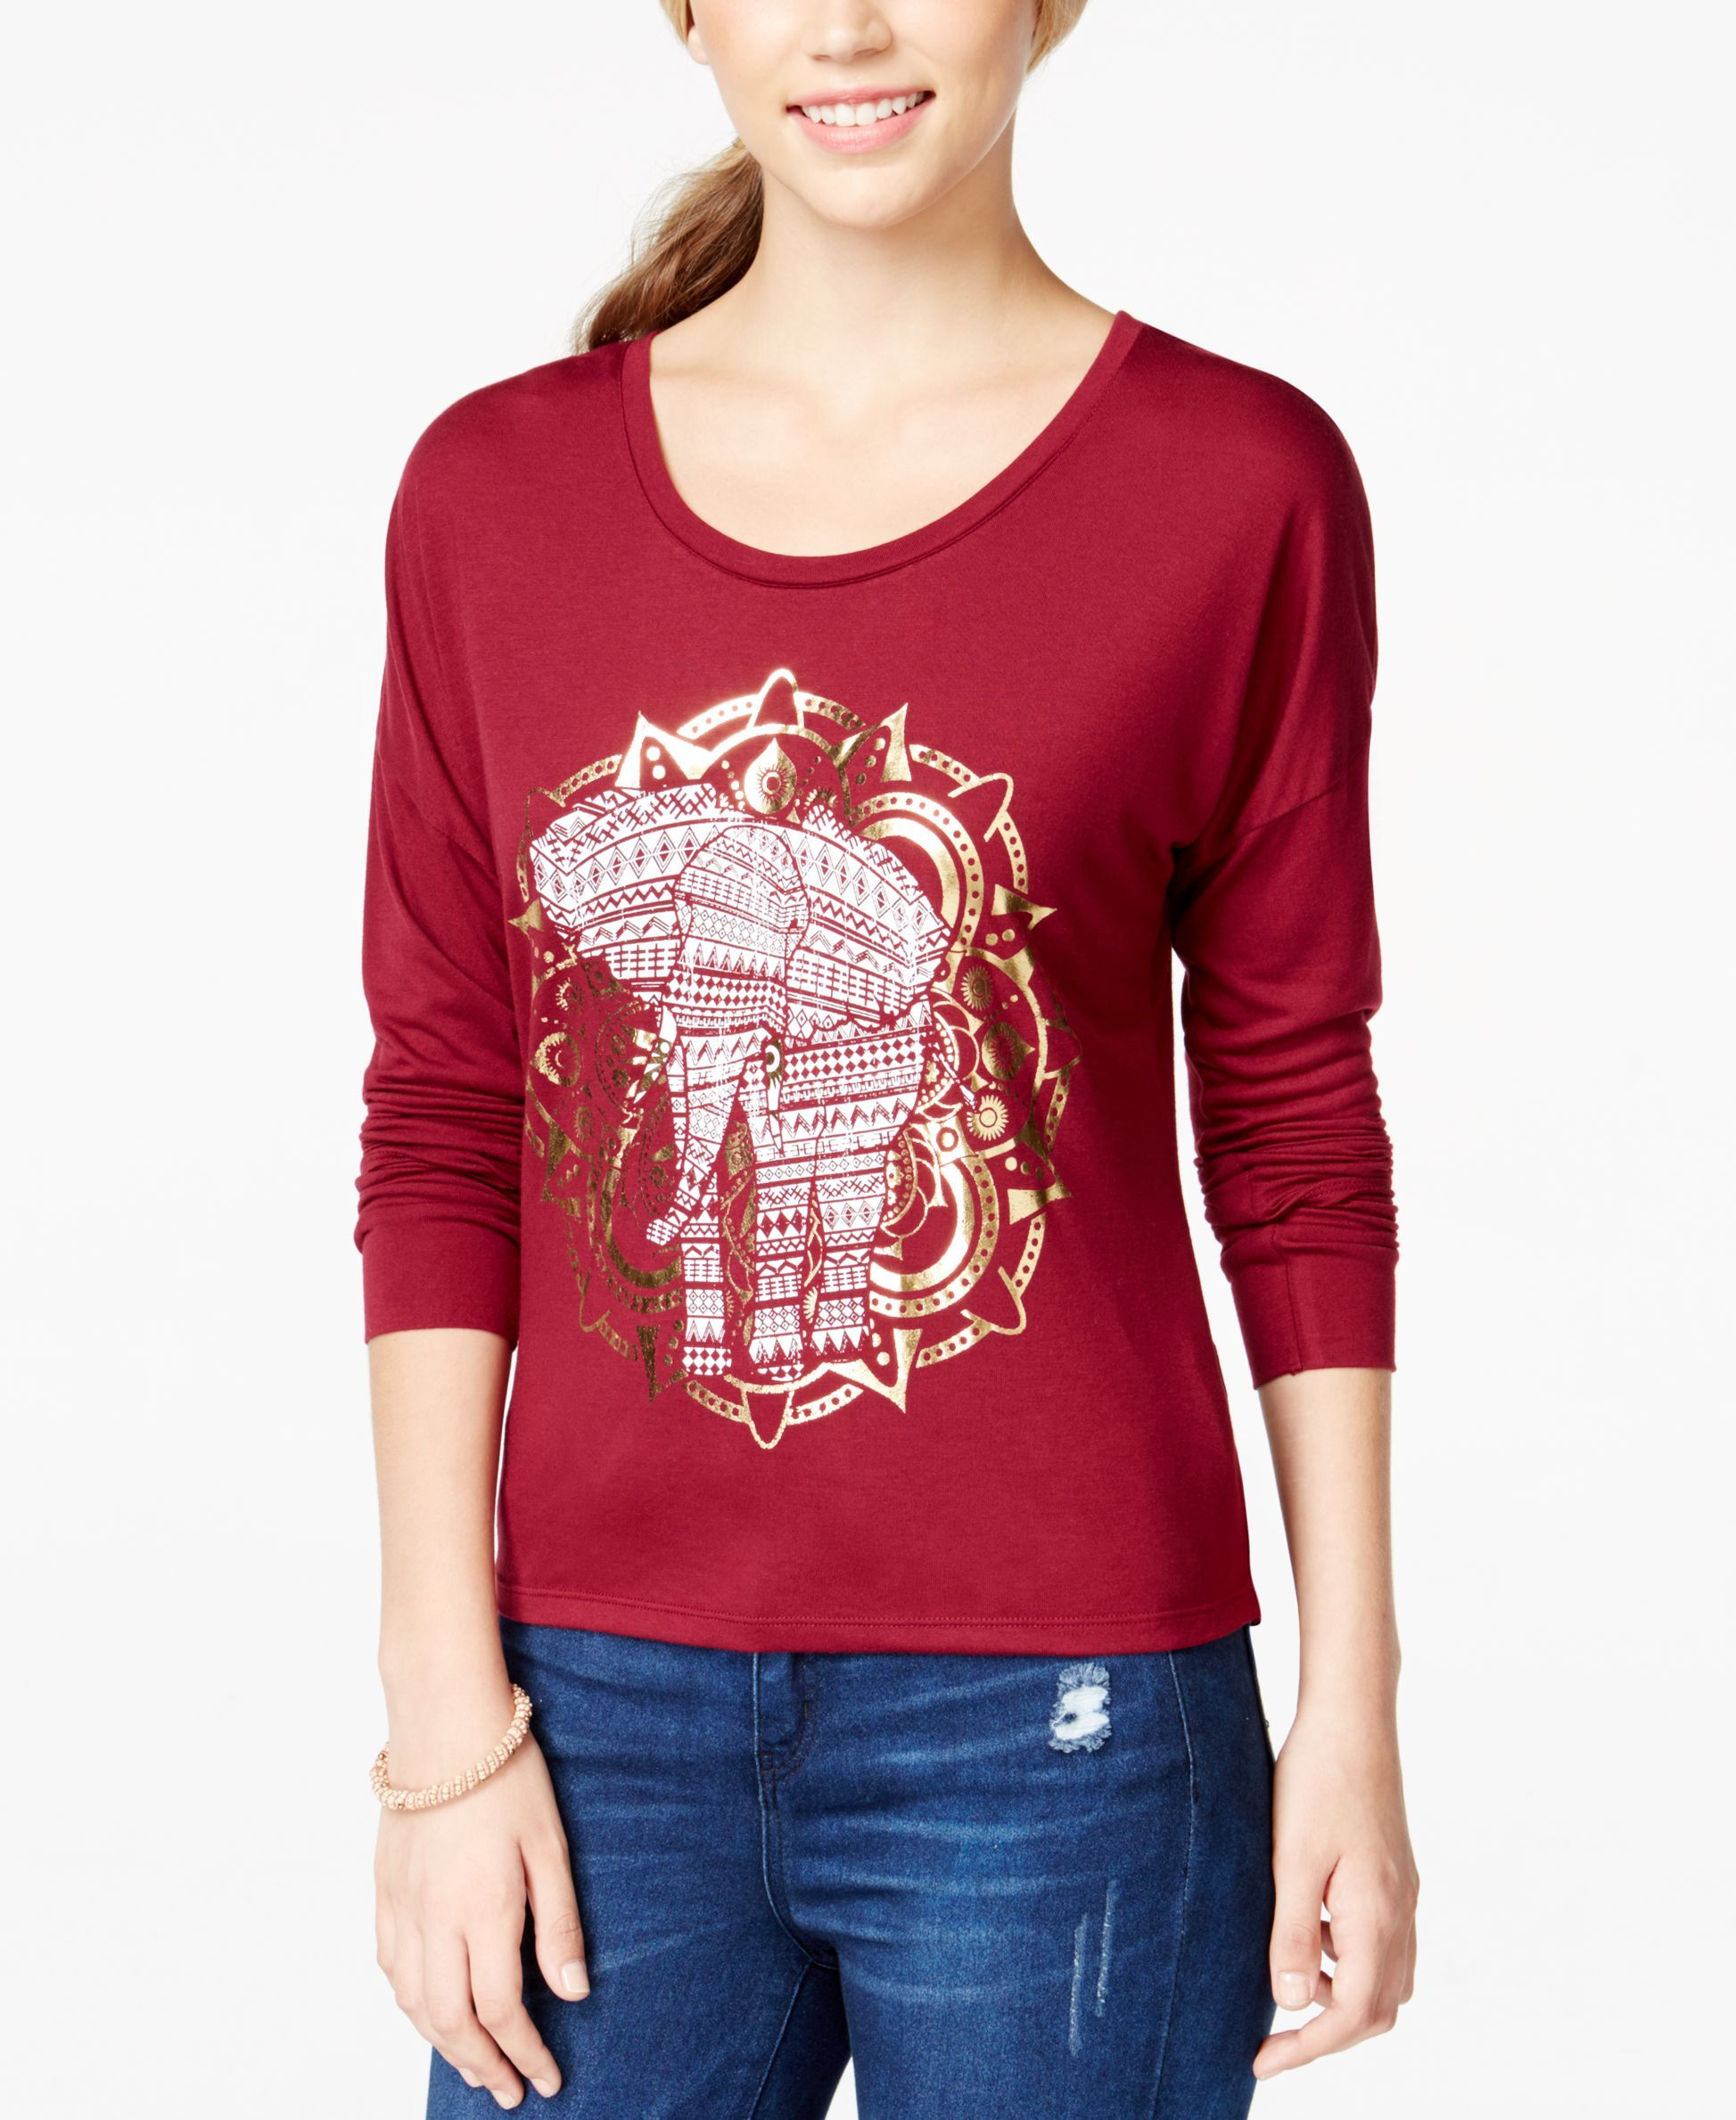 Belle Du Jour Juniors' Elephant Foil Graphic Long-Sleeve Top